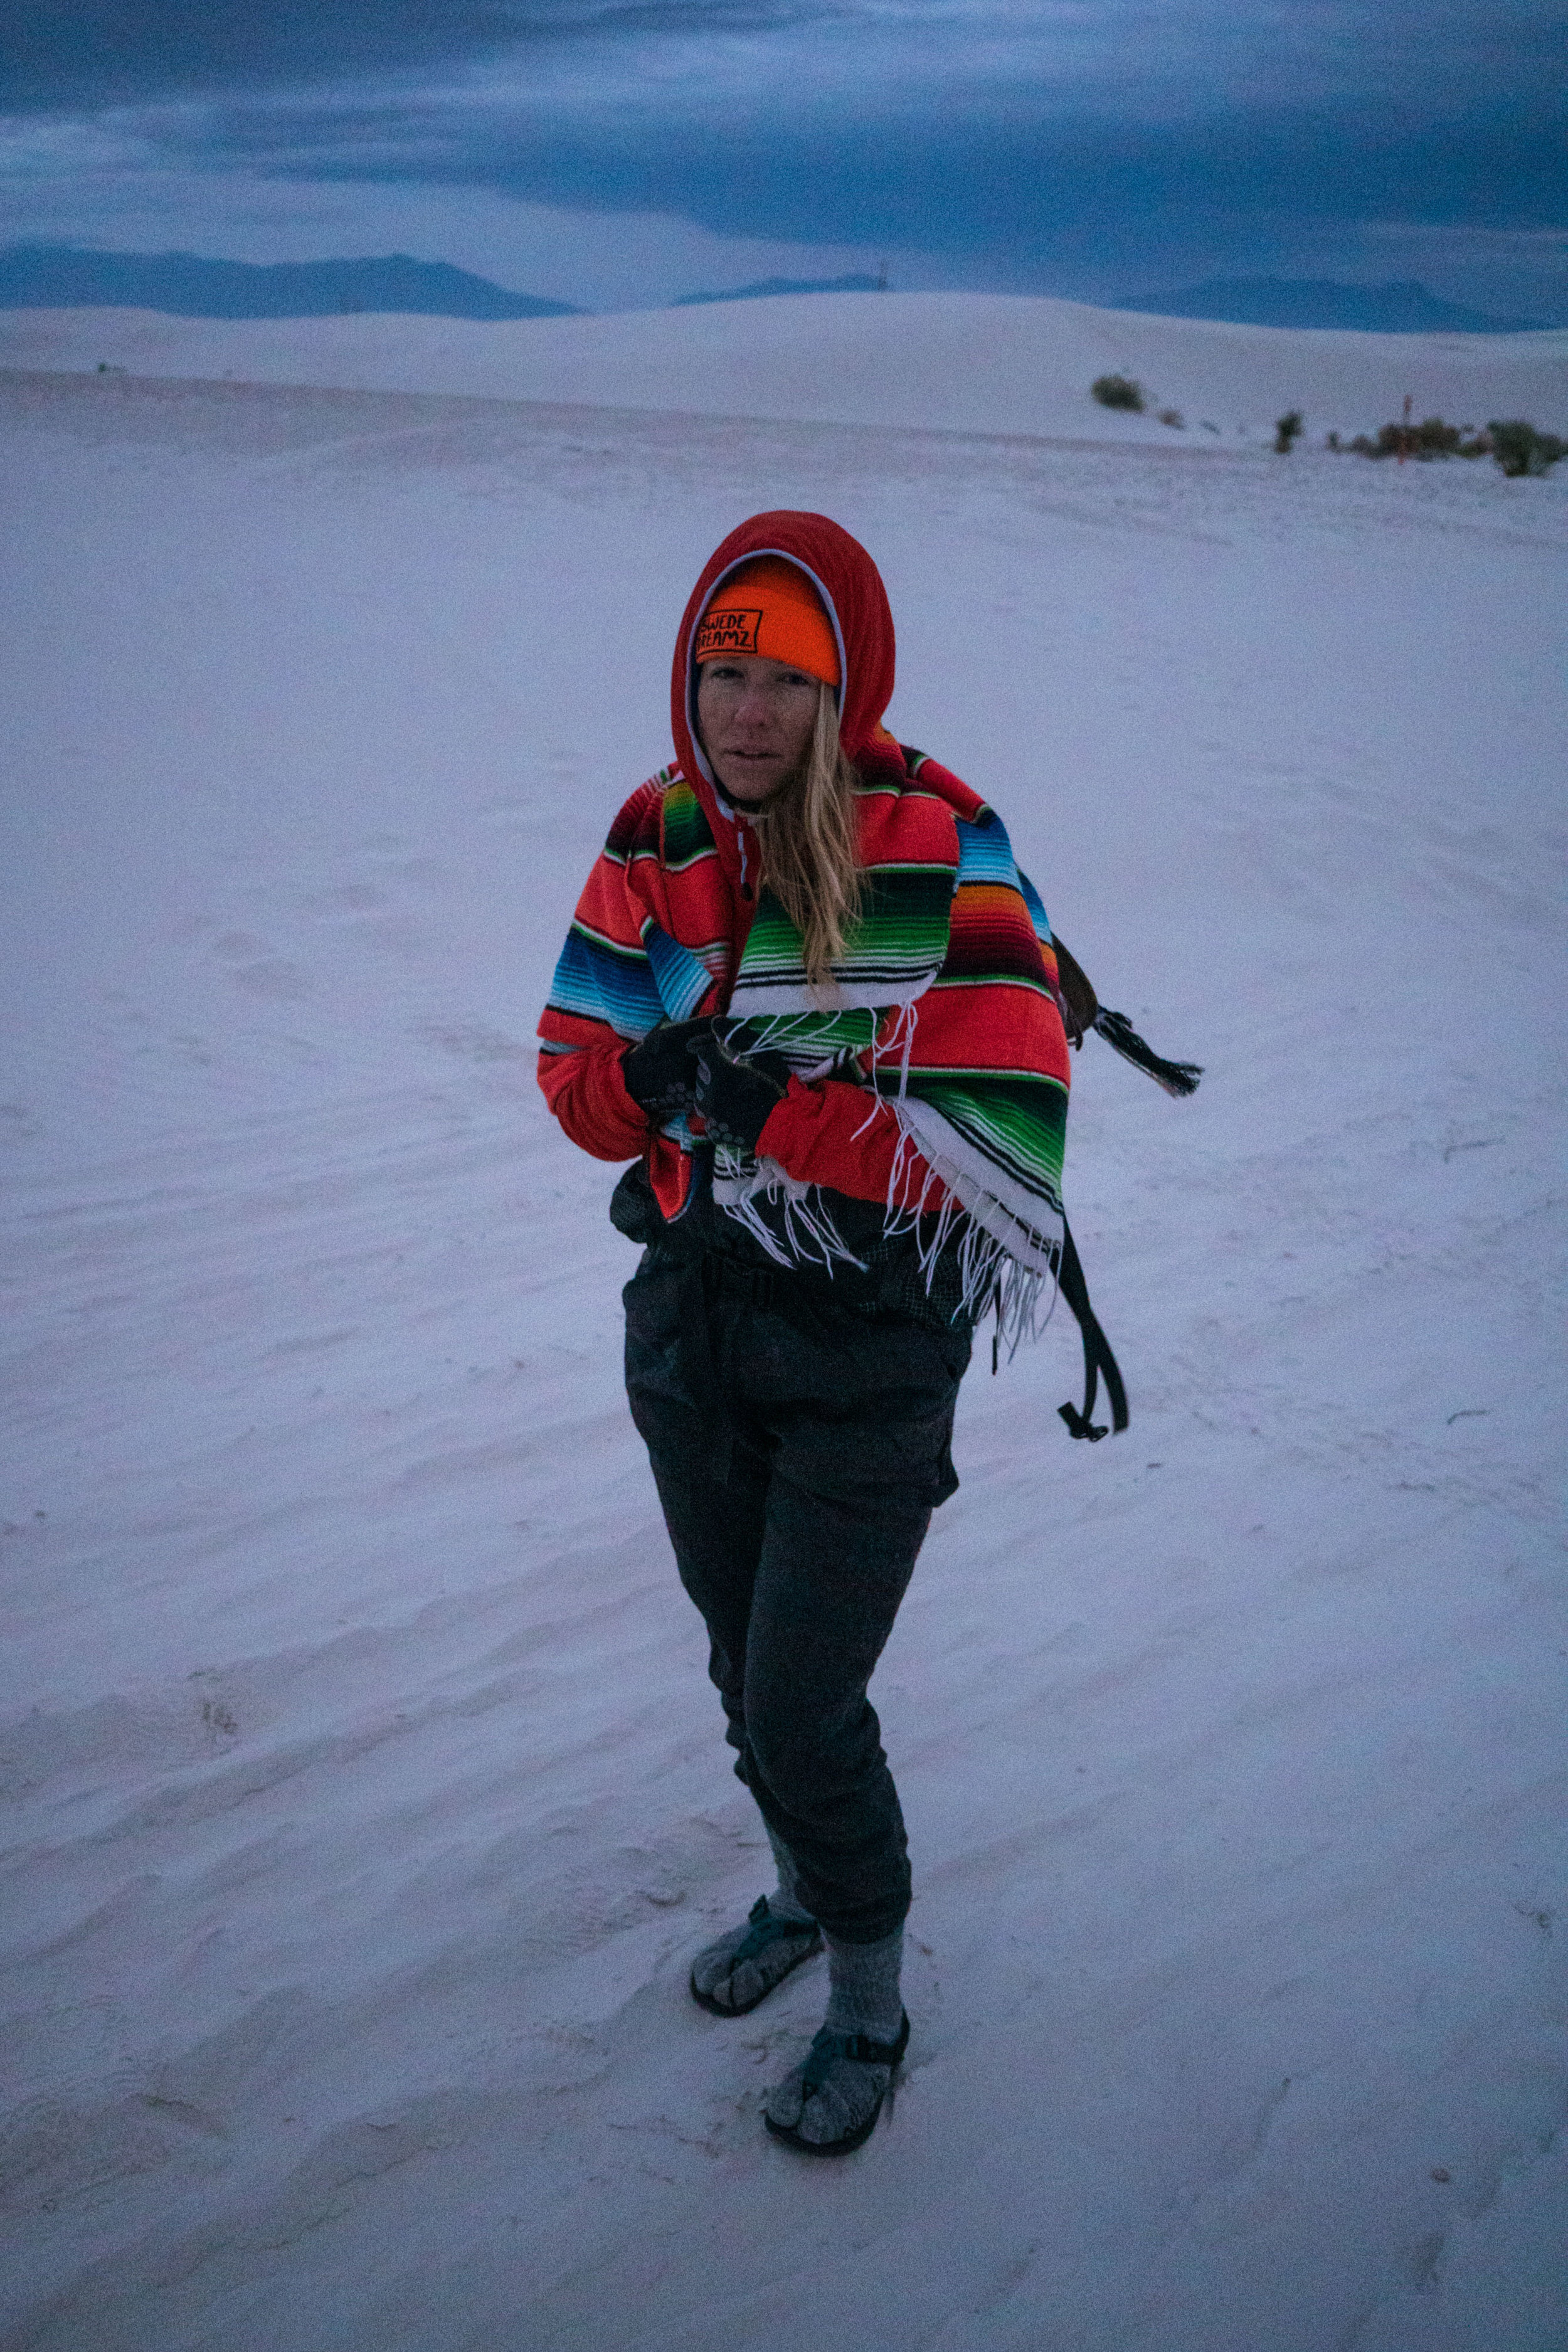 MAK wearing everything she packed into camp, and is still cold.